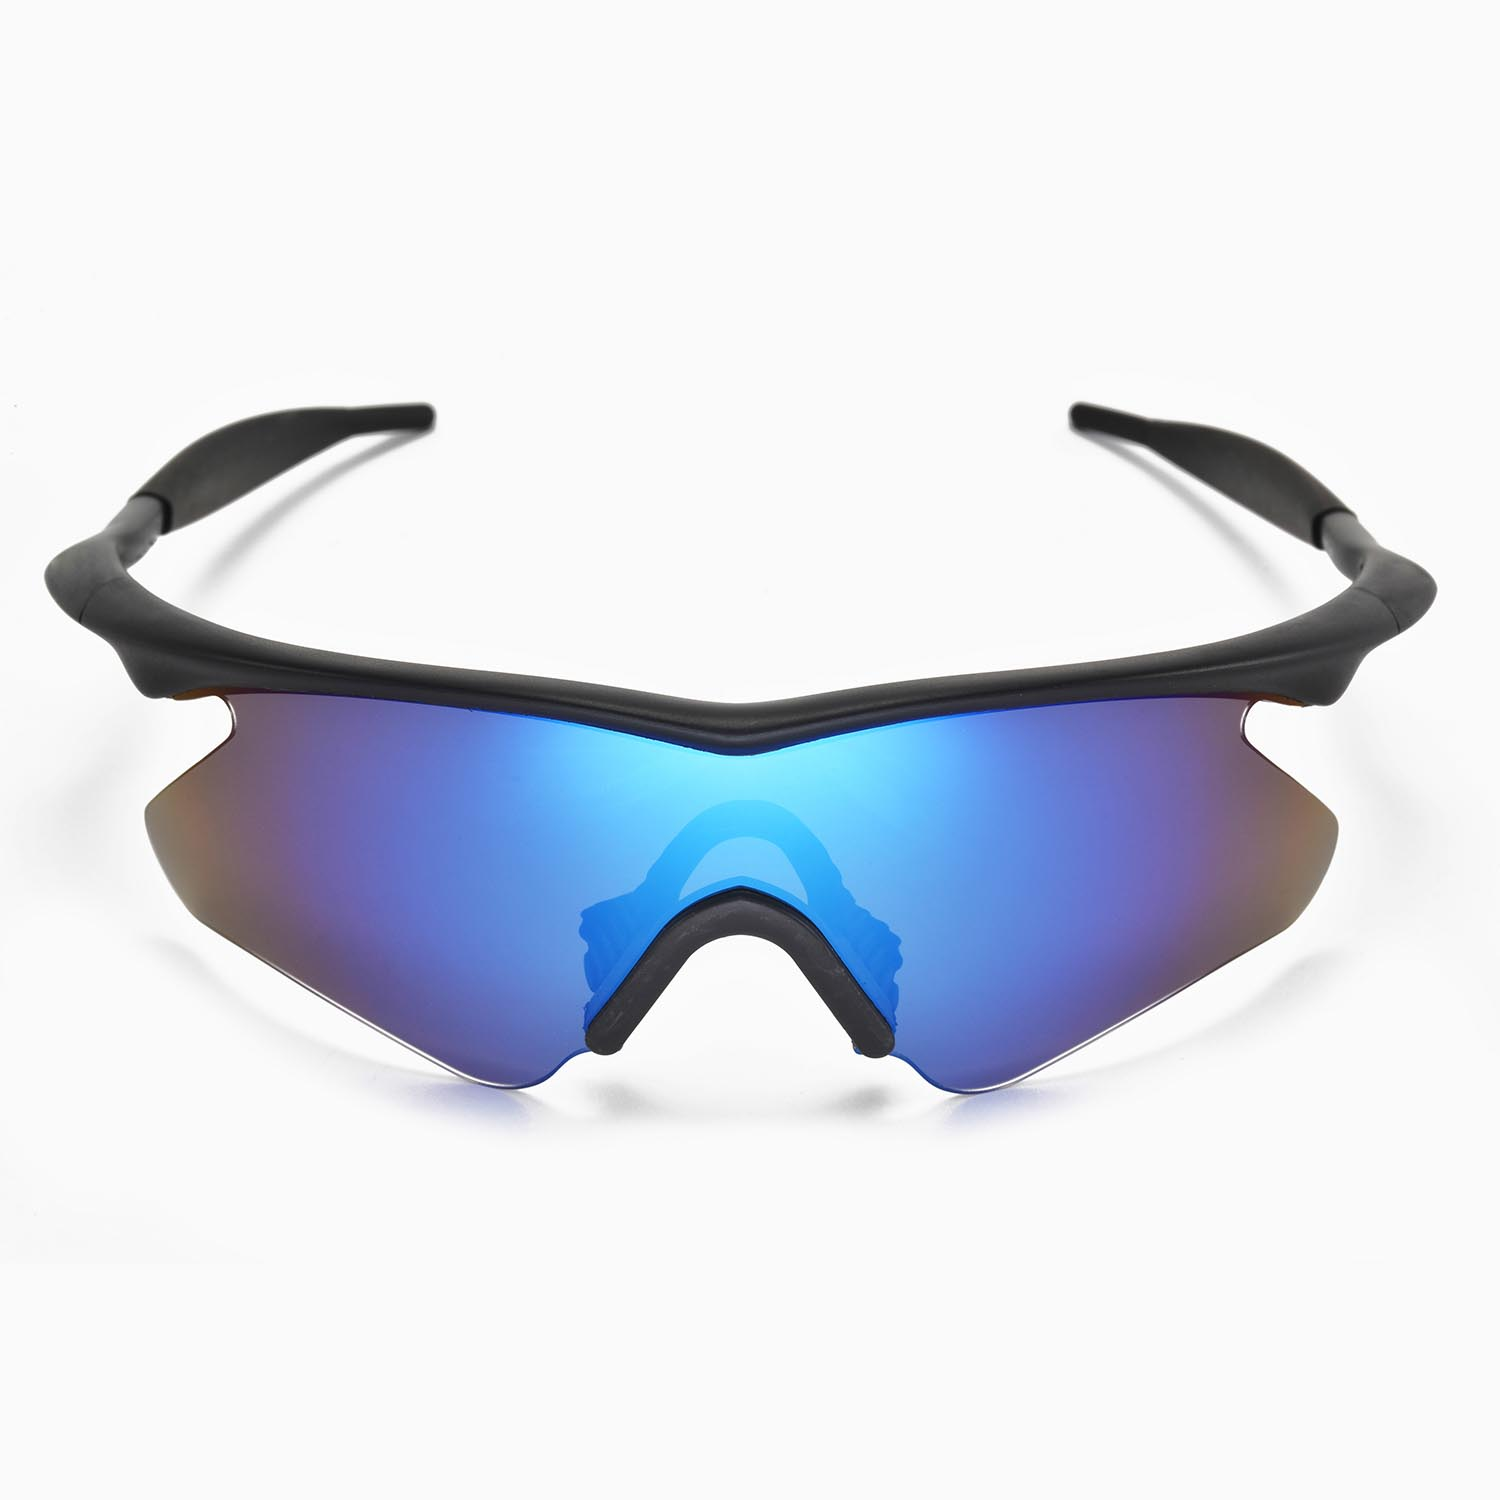 New Walleva Ice Blue Replacement Lenses For Oakley M Frame